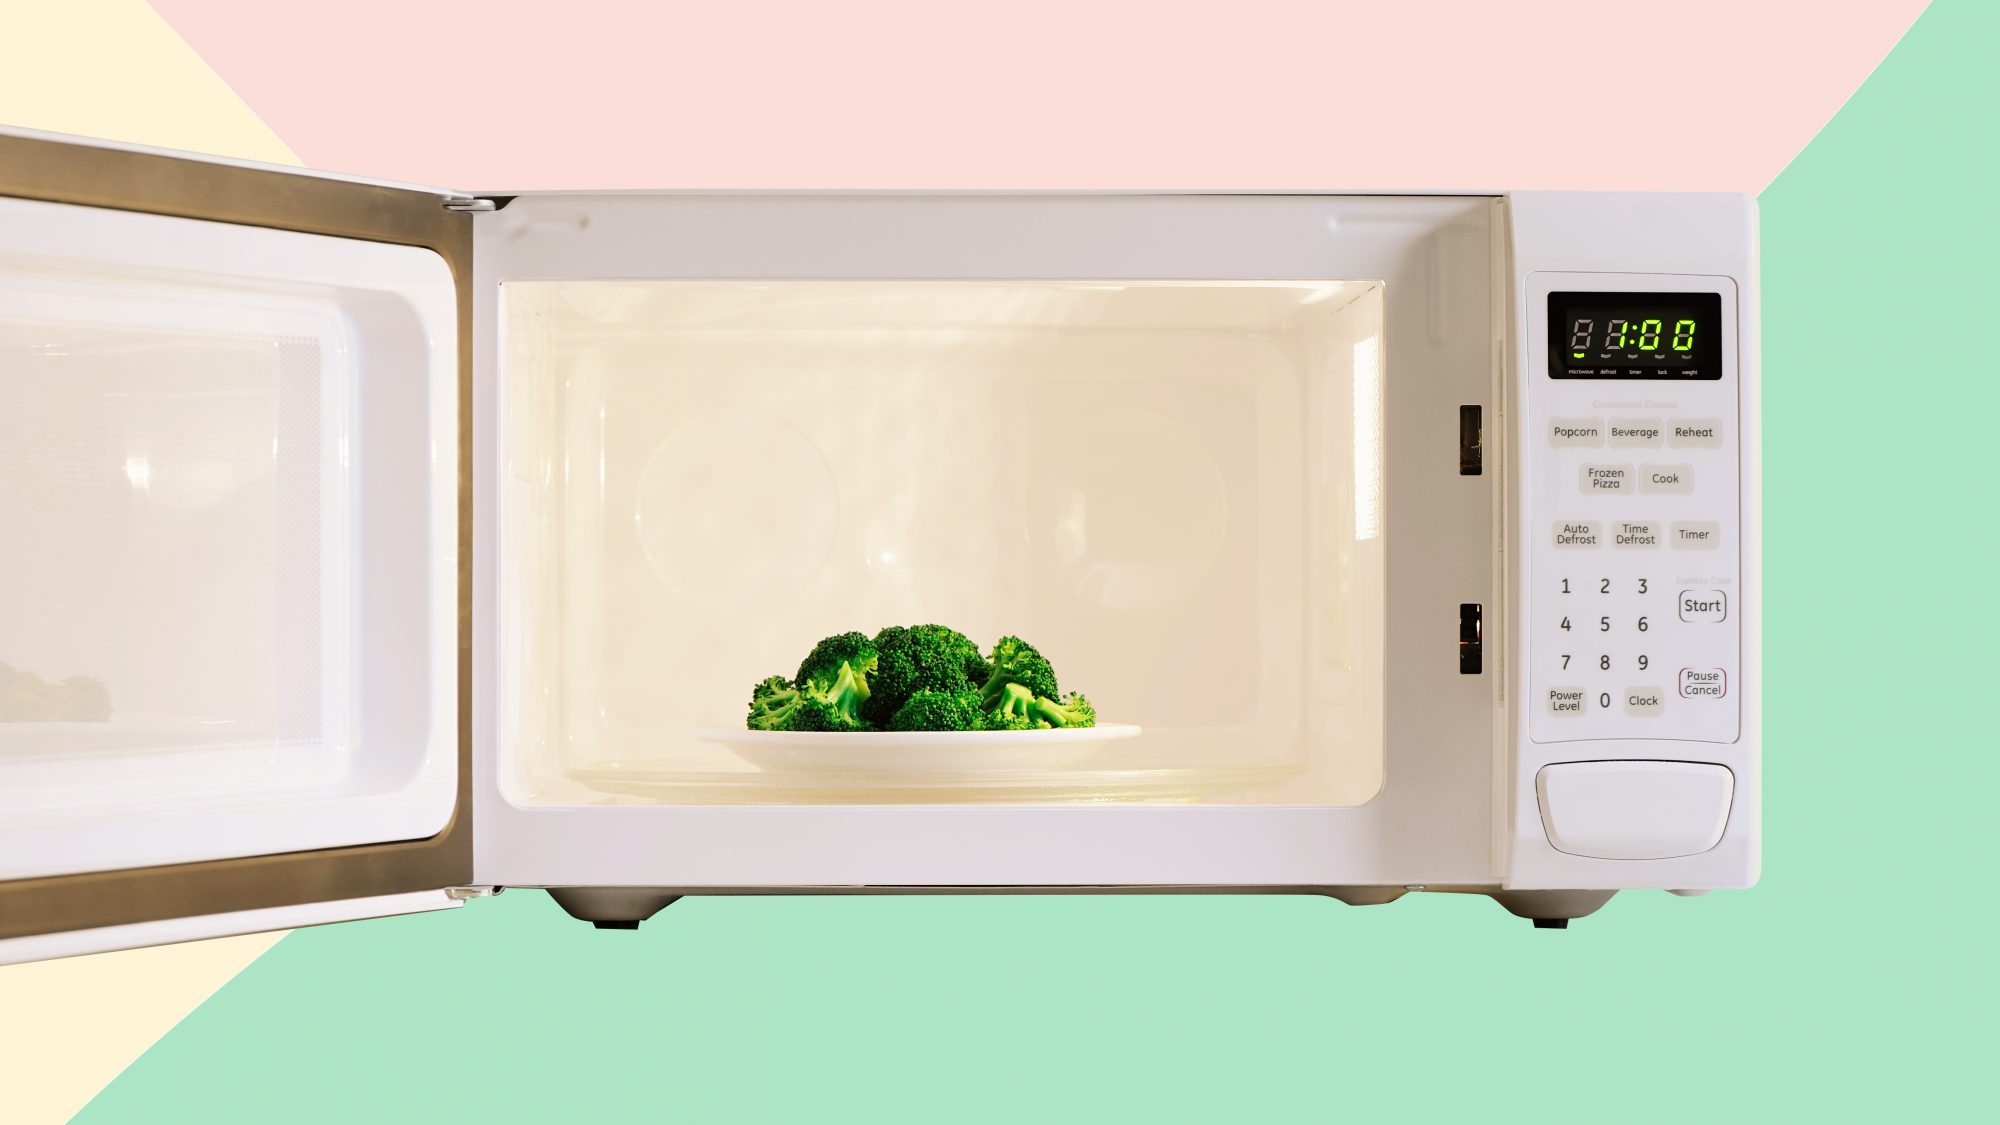 space-in-microwave